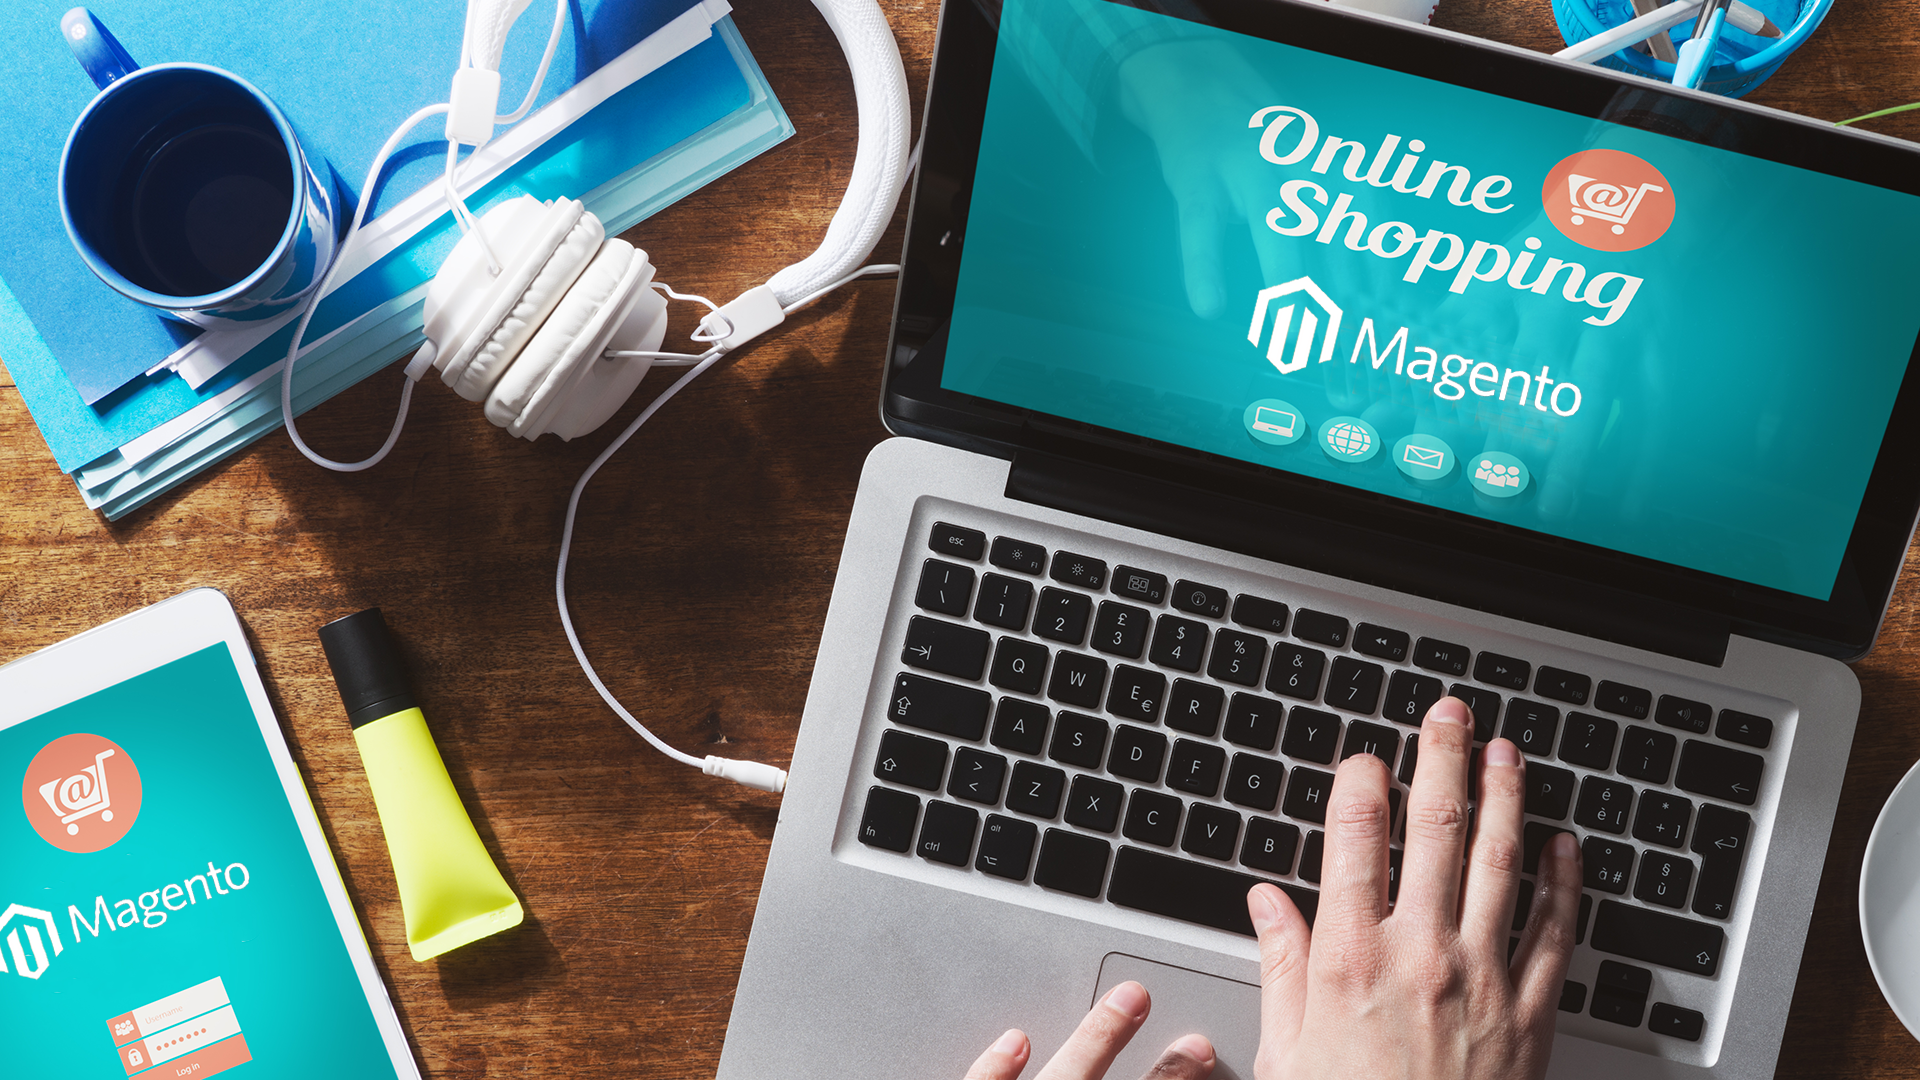 How do webshop owners benefit from the Perfion & Magento Commerce connection?